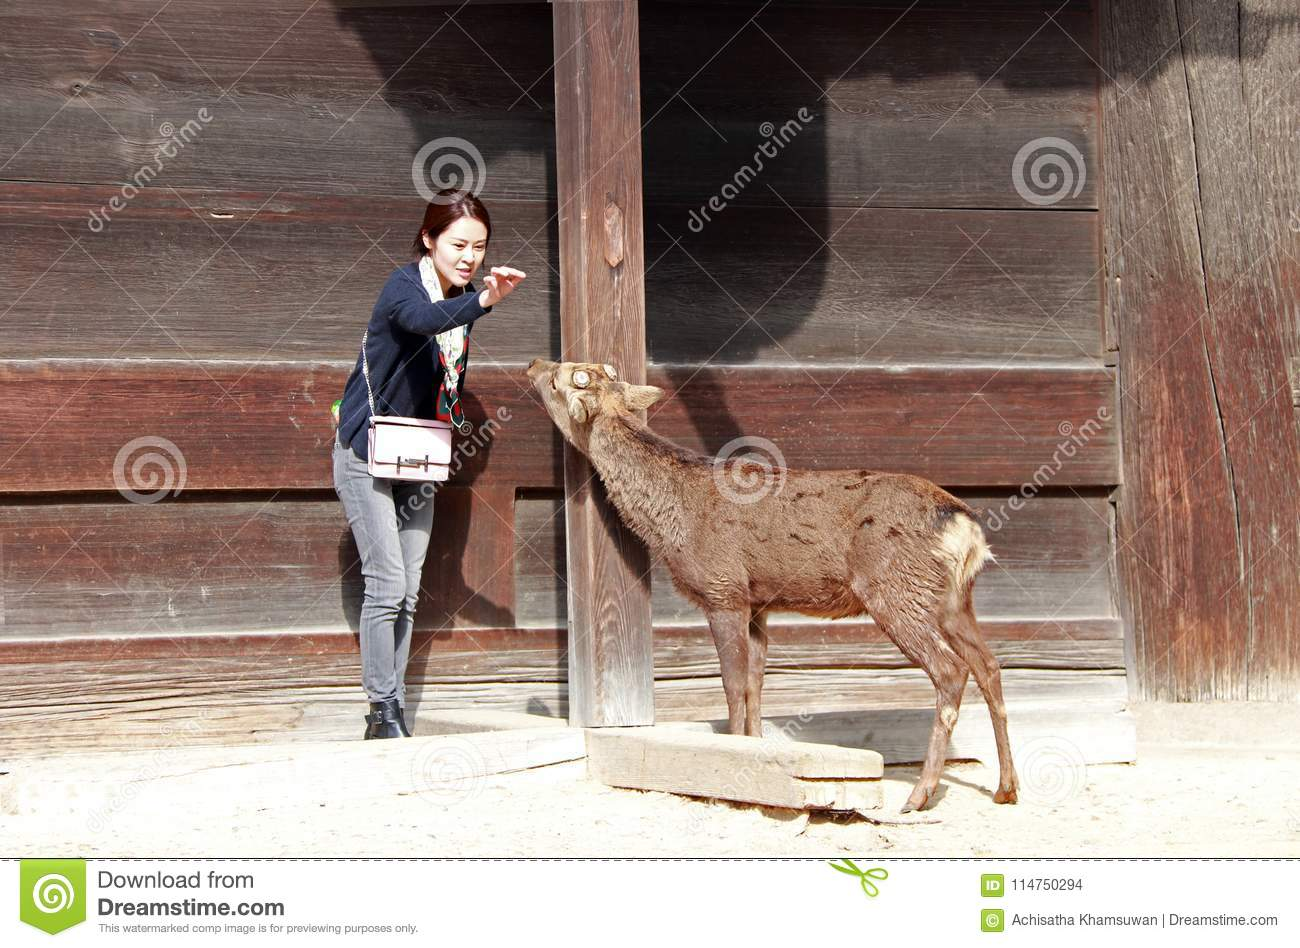 Tourist girl acting to feeding the food for deer on background wooden building in front of Todai-ji temple.